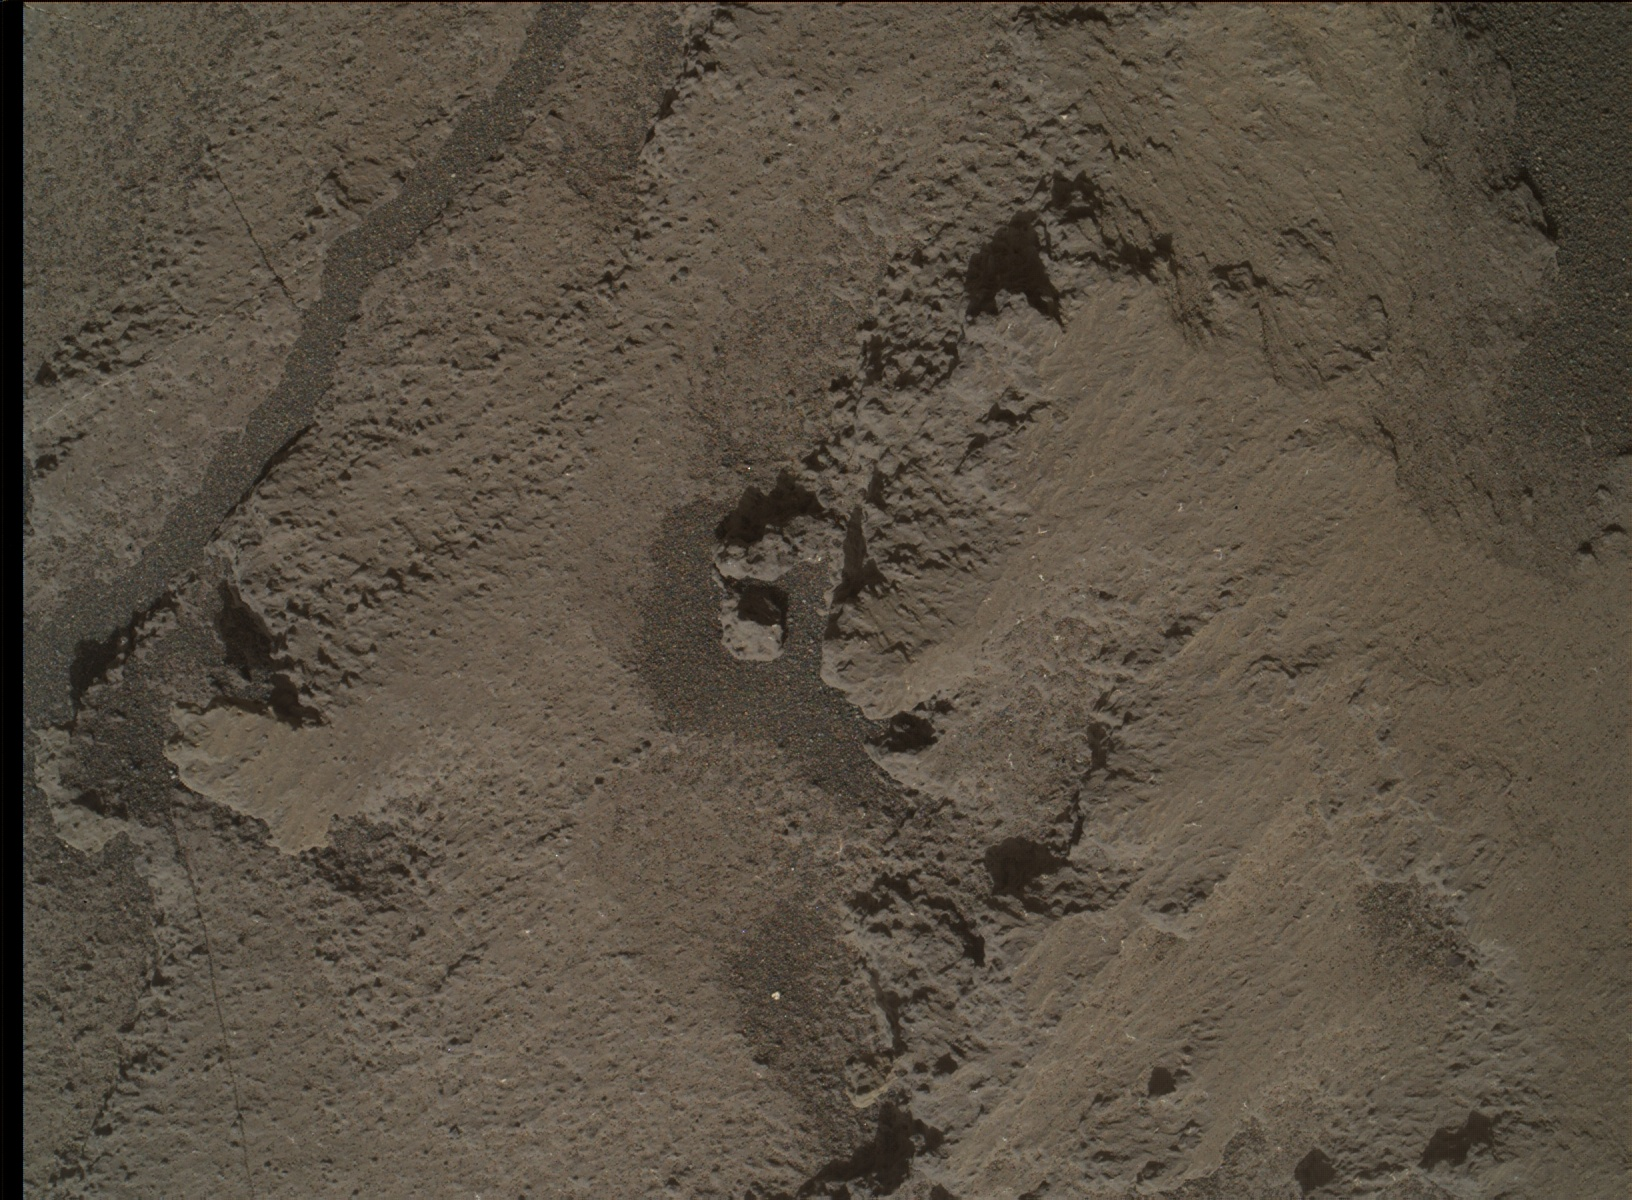 Nasa's Mars rover Curiosity acquired this image using its Mars Hand Lens Imager (MAHLI) on Sol 1245